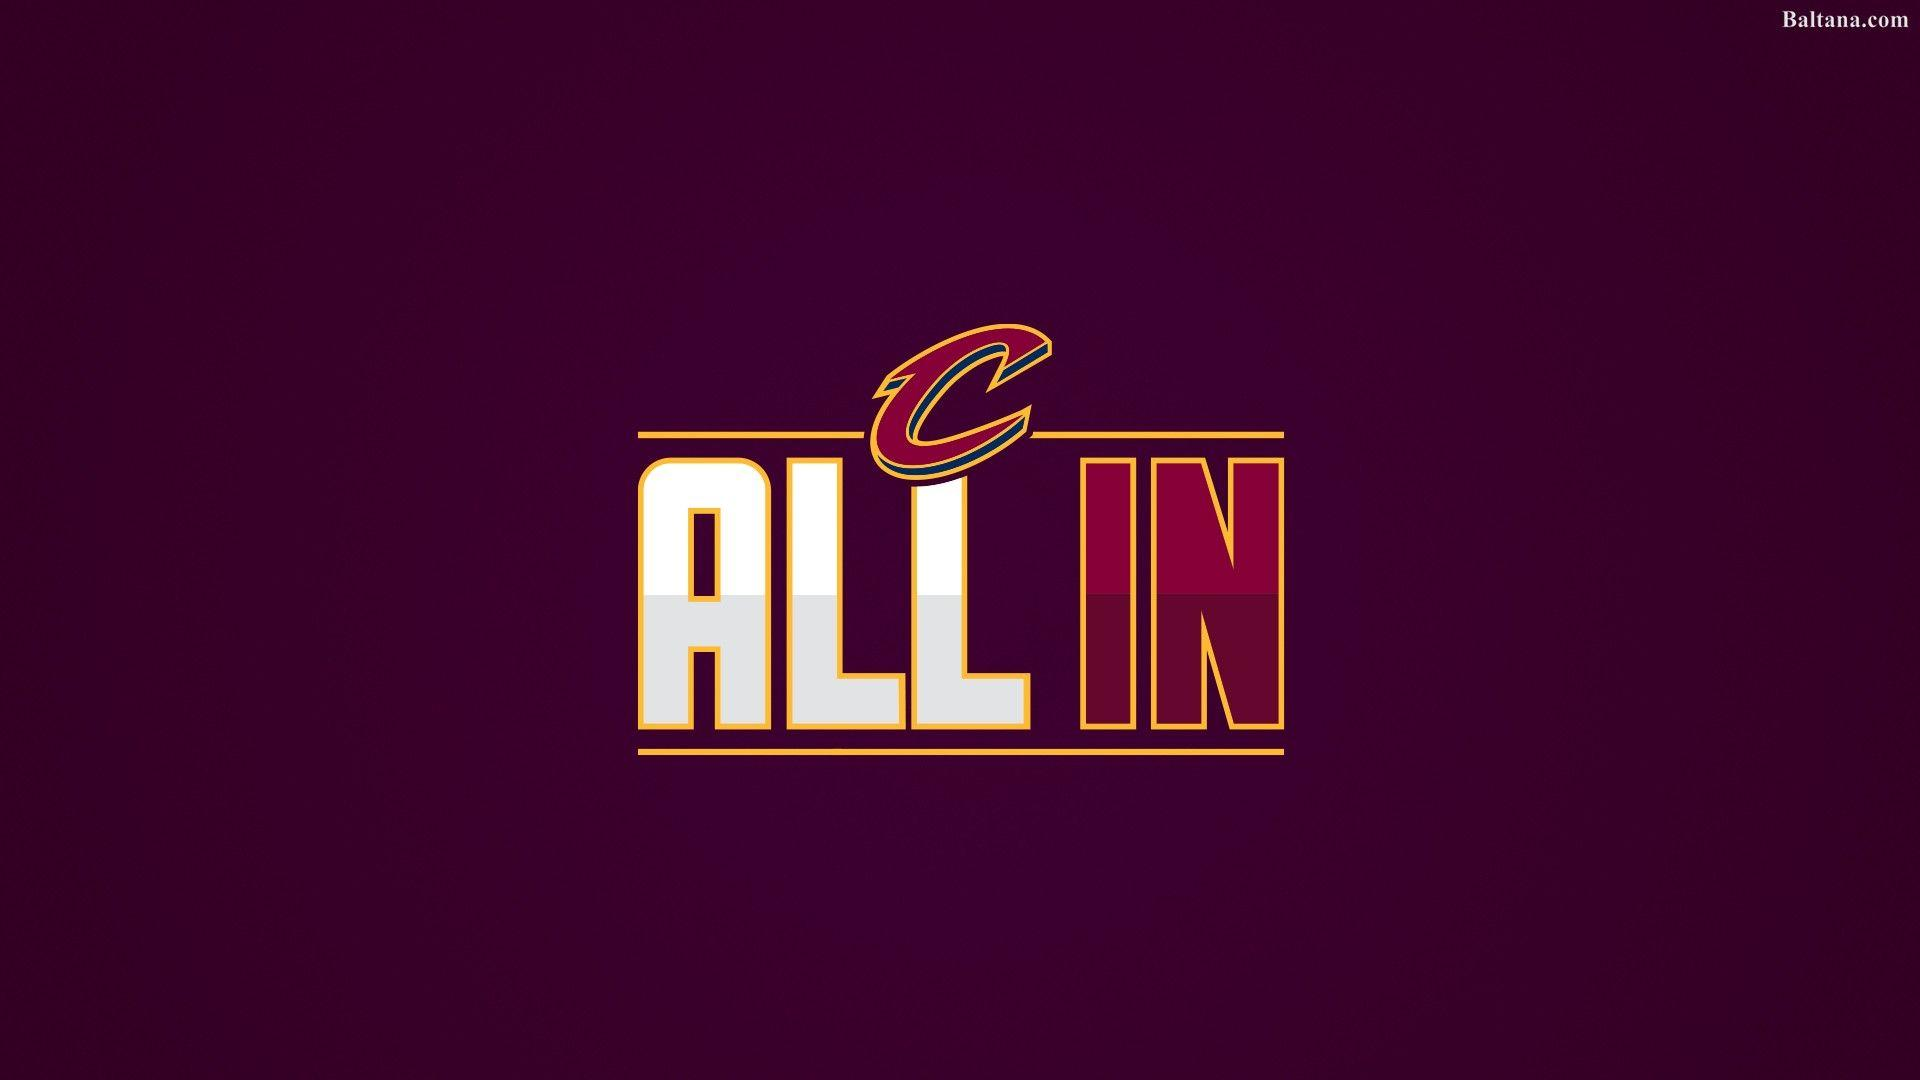 Cleveland Cavaliers Backgrounds HD Wallpapers 33443